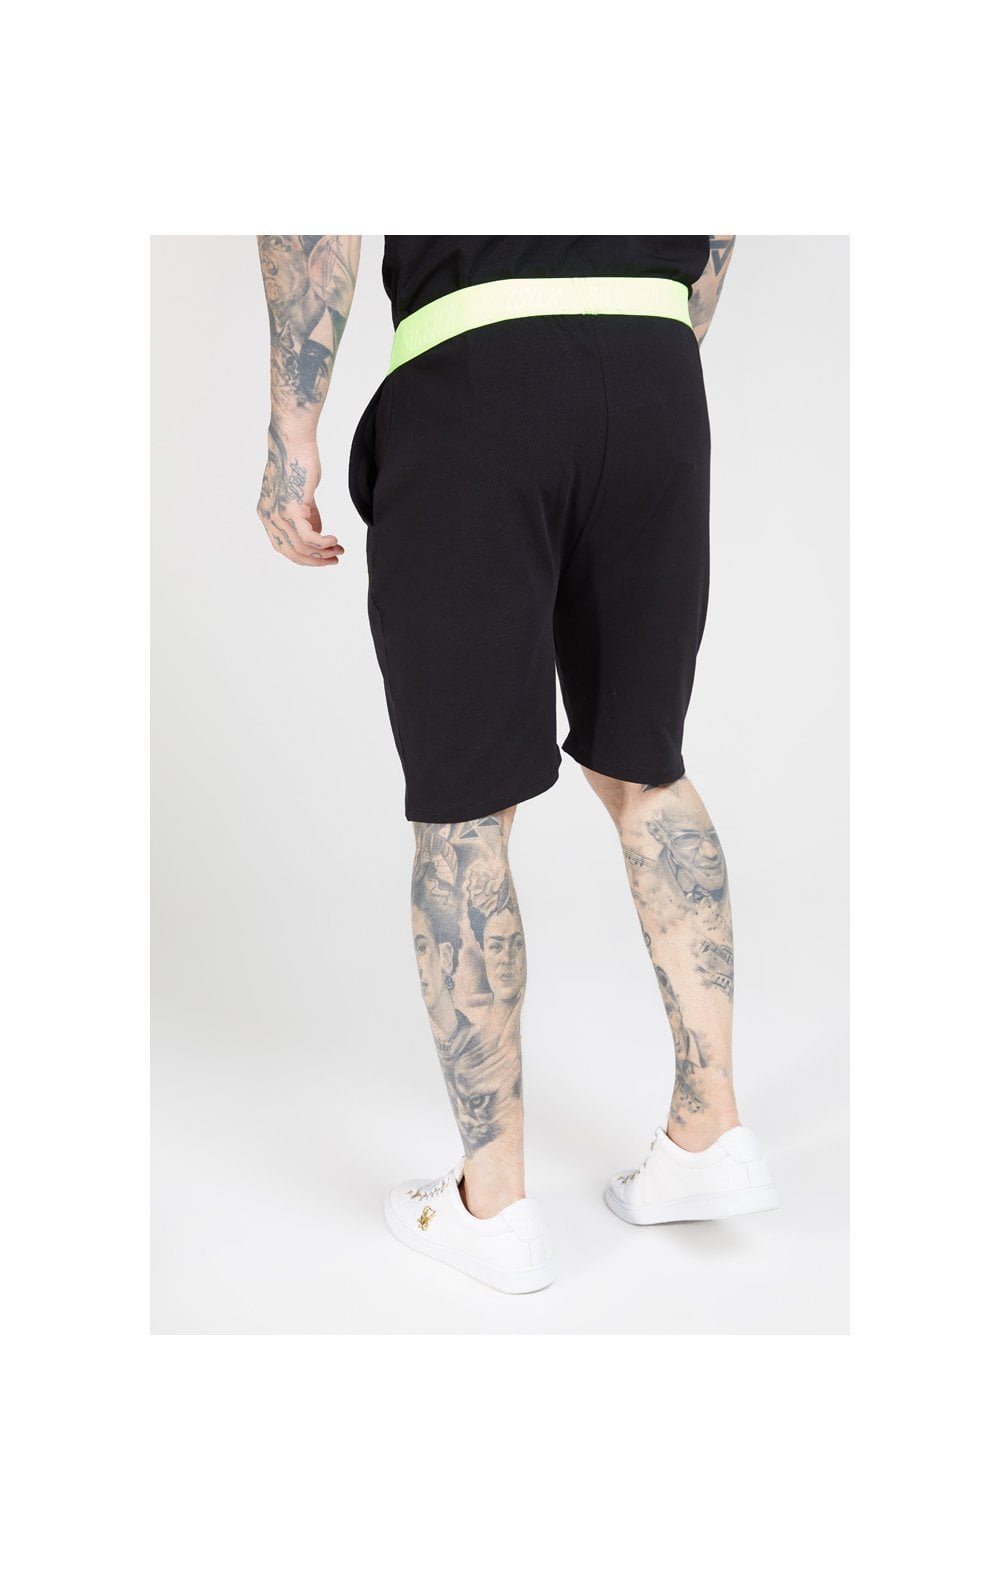 SikSilk Relaxed Fit Shorts – Black & Neon Yellow (2)